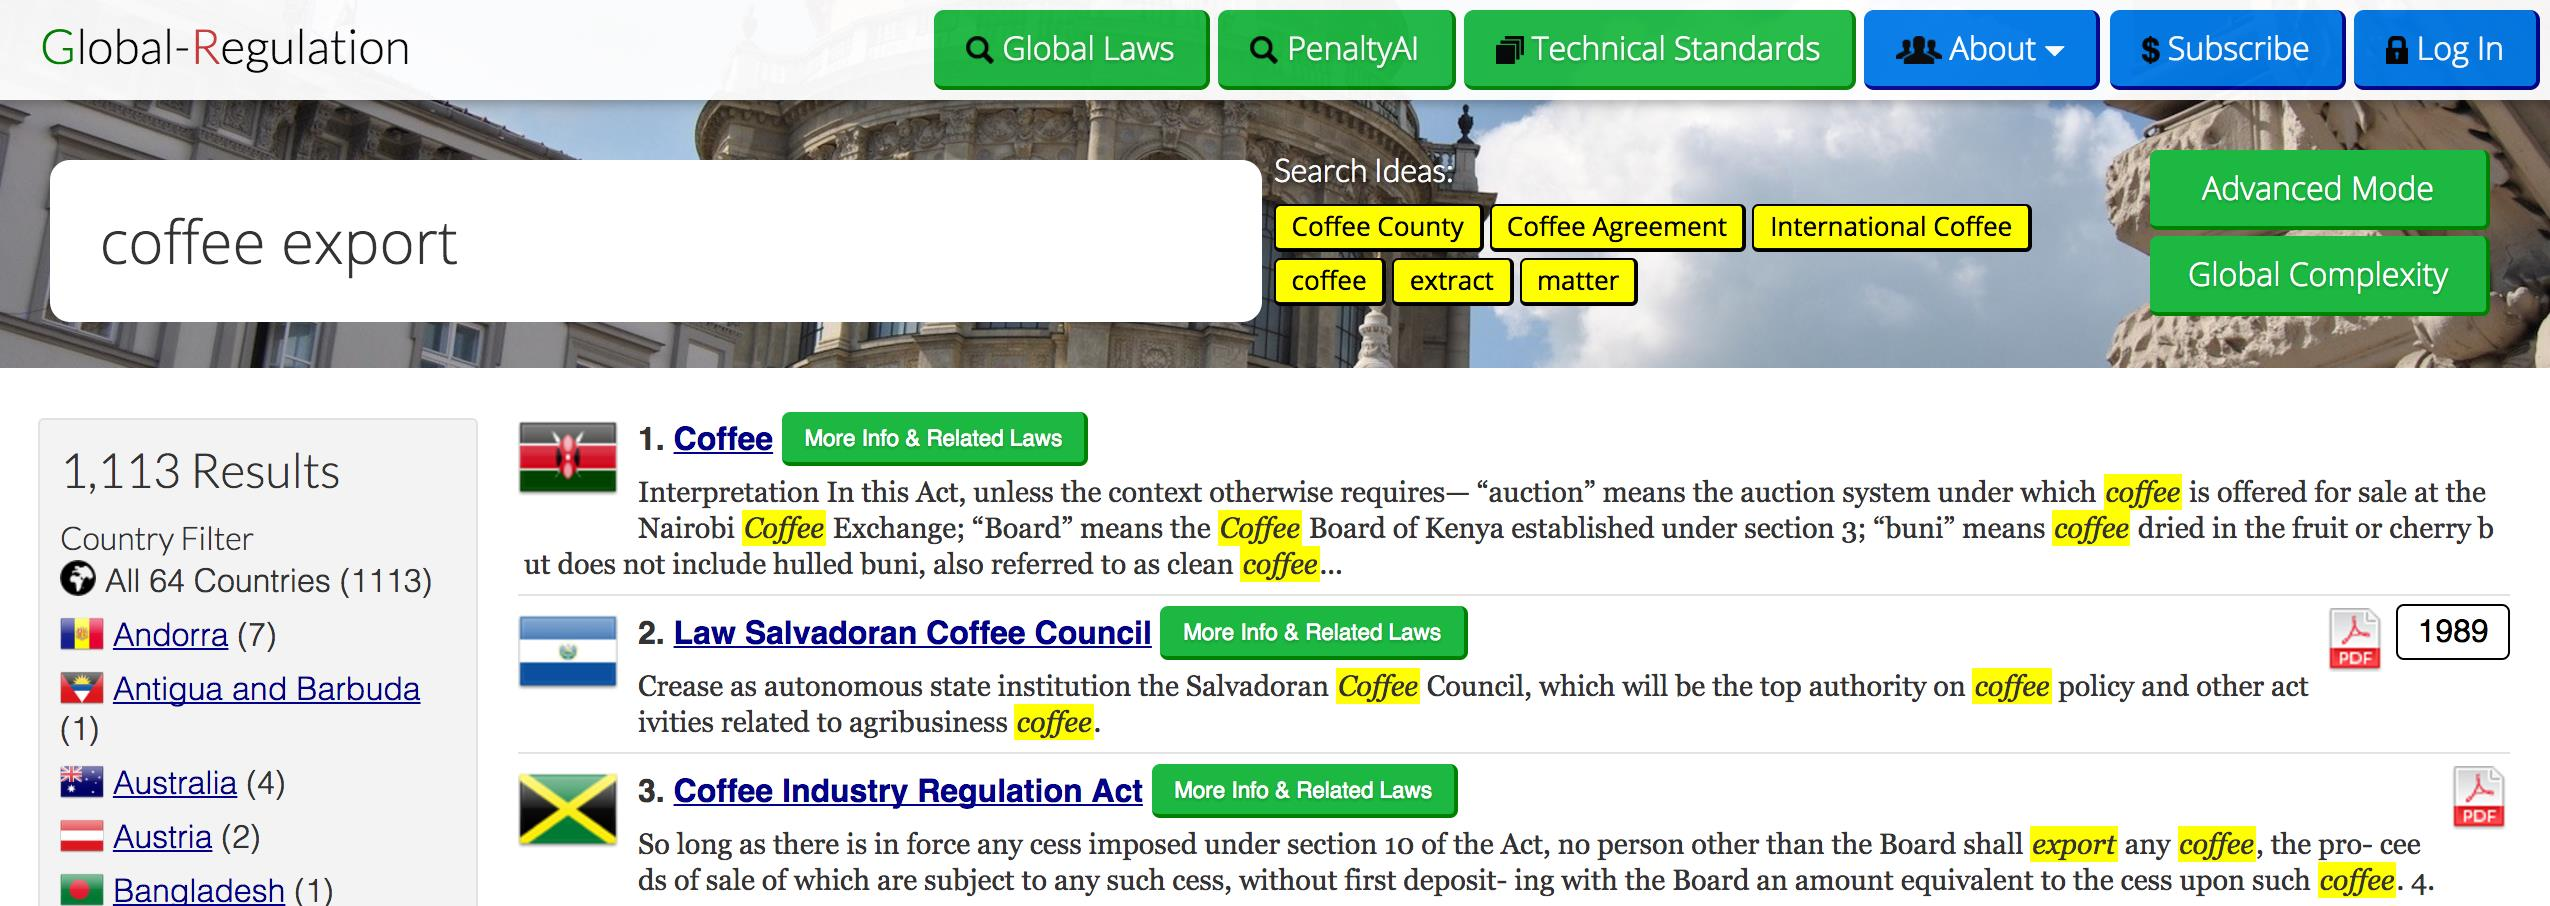 Global-Regulation Search Engine